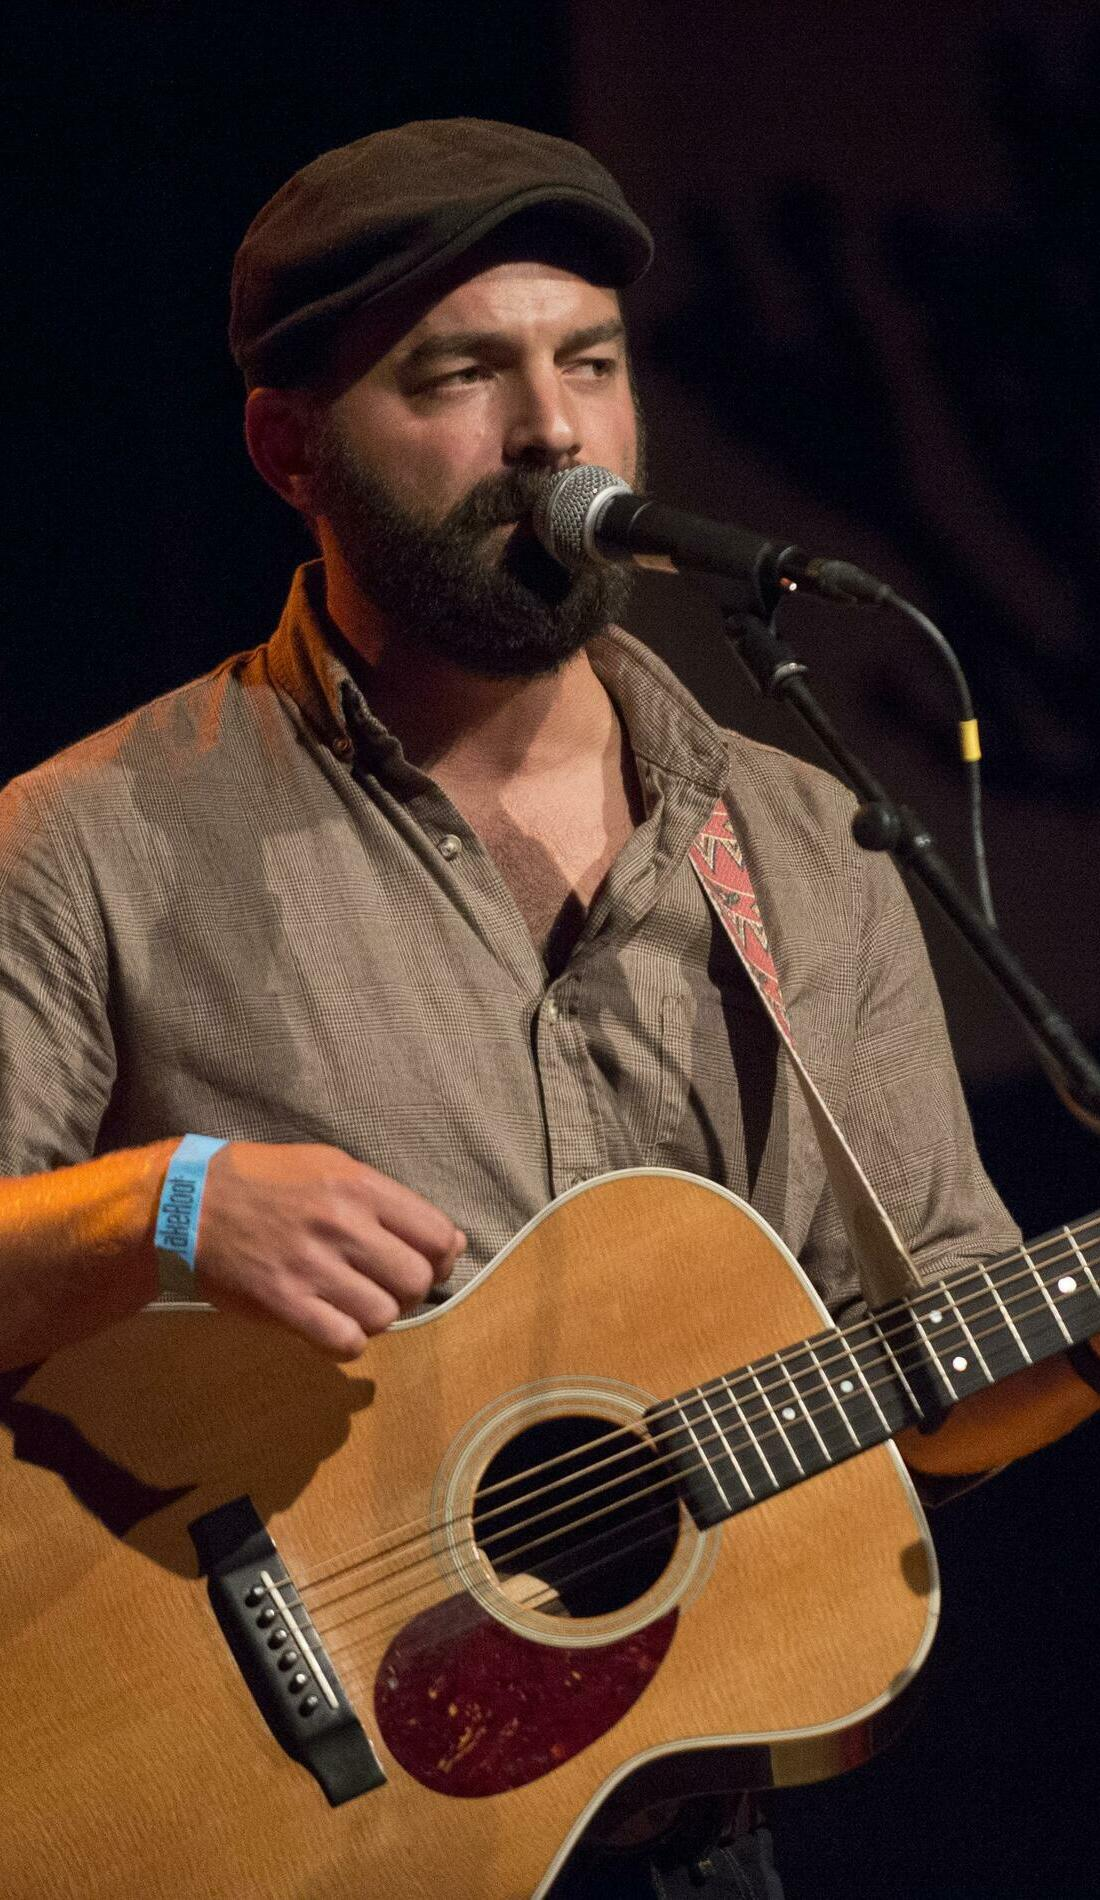 A Drew Holcomb live event